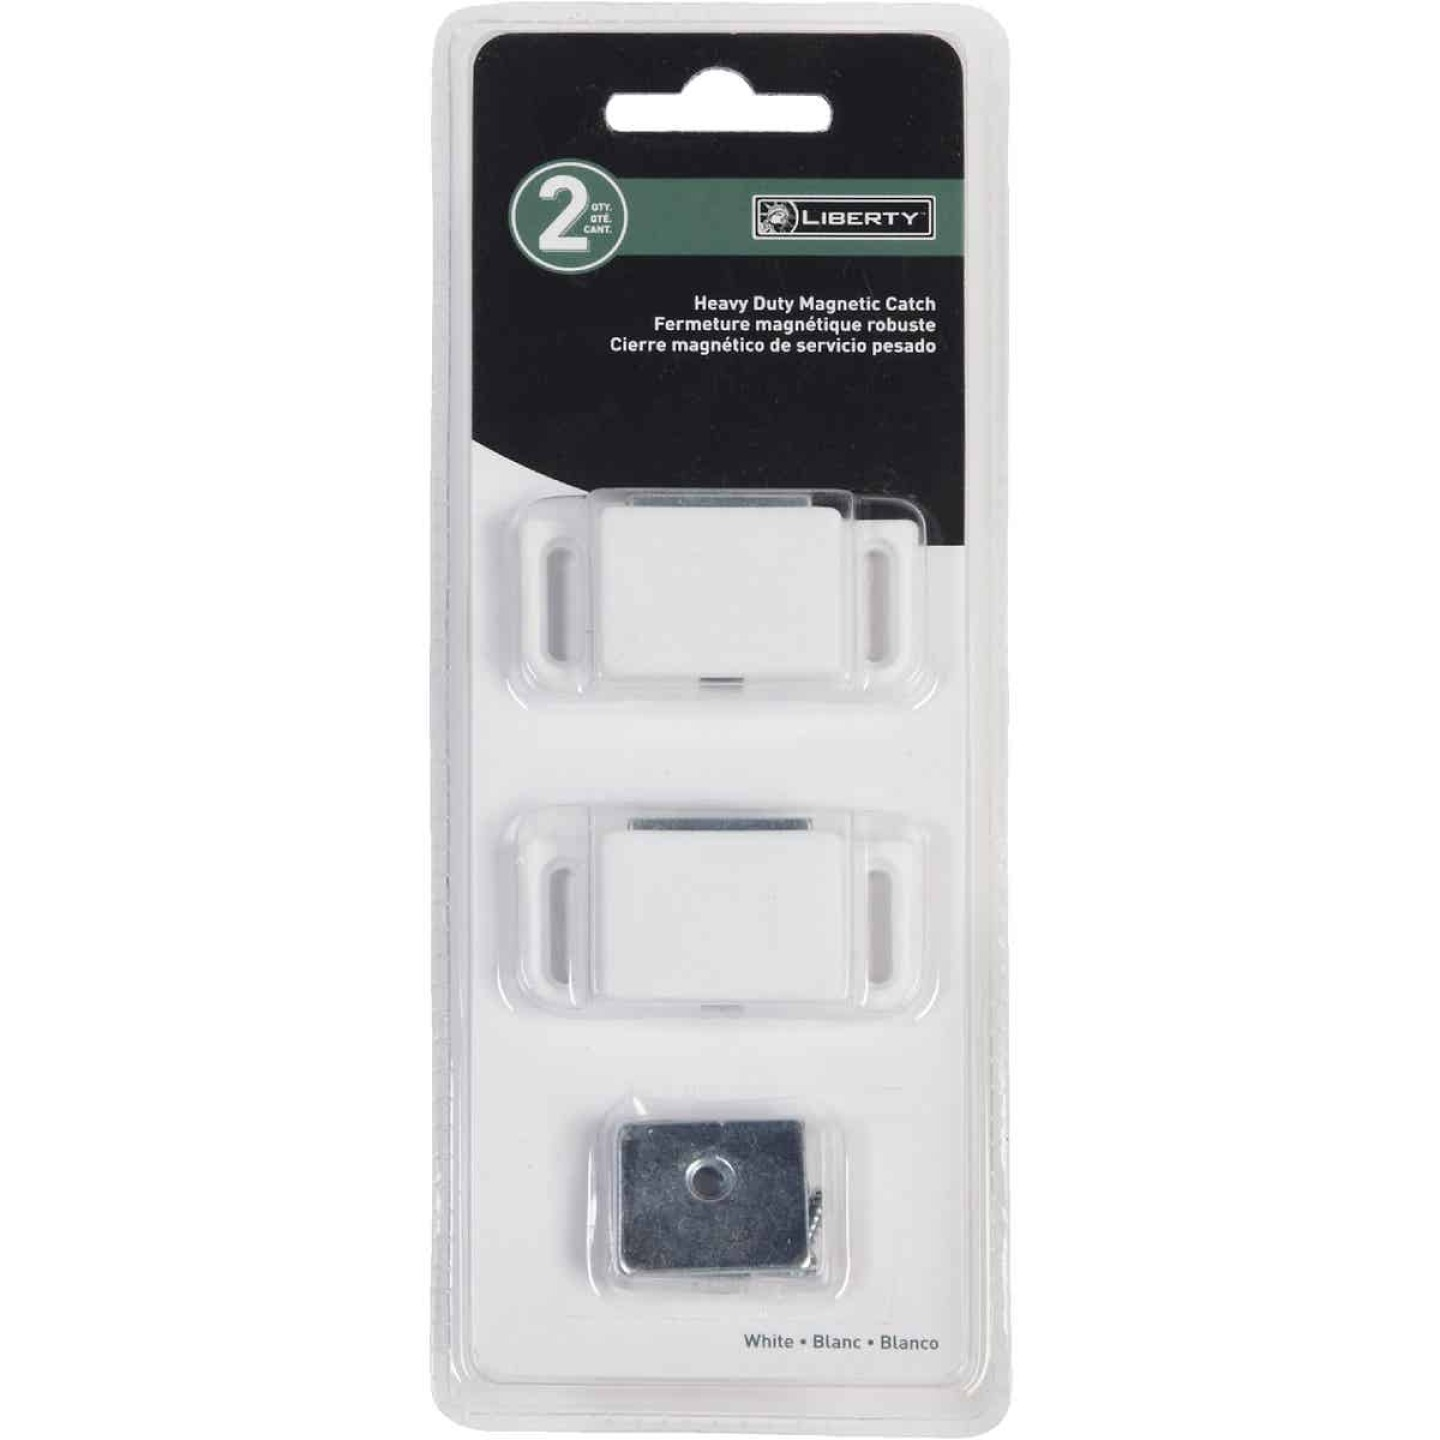 Liberty White Heavy-Duty Magnetic Catch with Strike (2-Count) Image 2